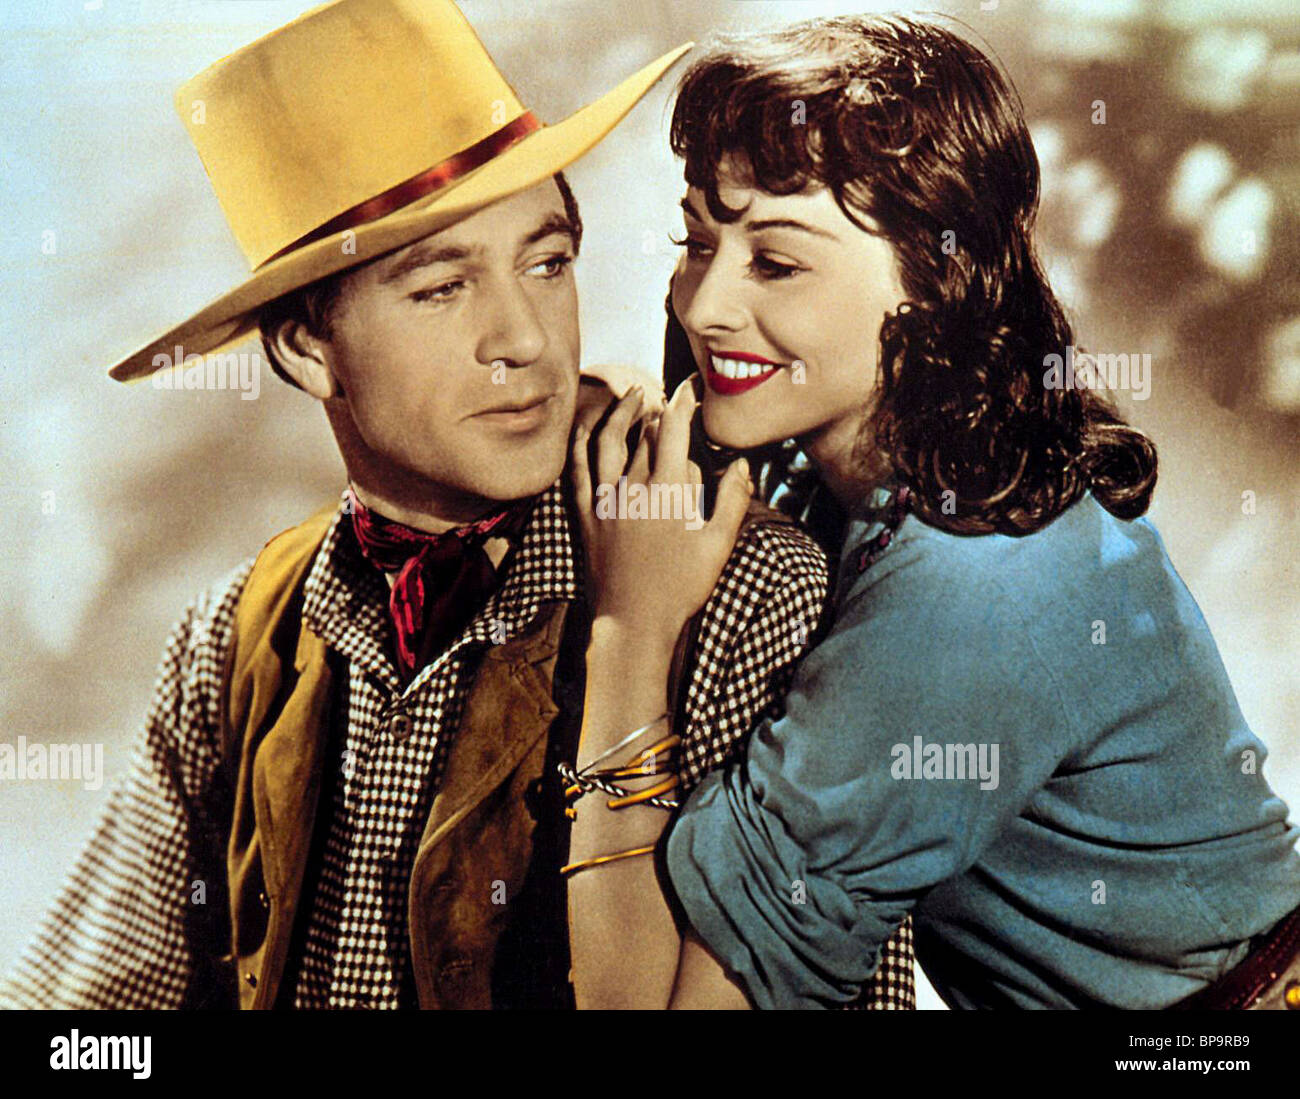 GARY COOPER & PAULETTE GODDARD NORTH WEST MOUNTED POLICE (1940) - Stock Image